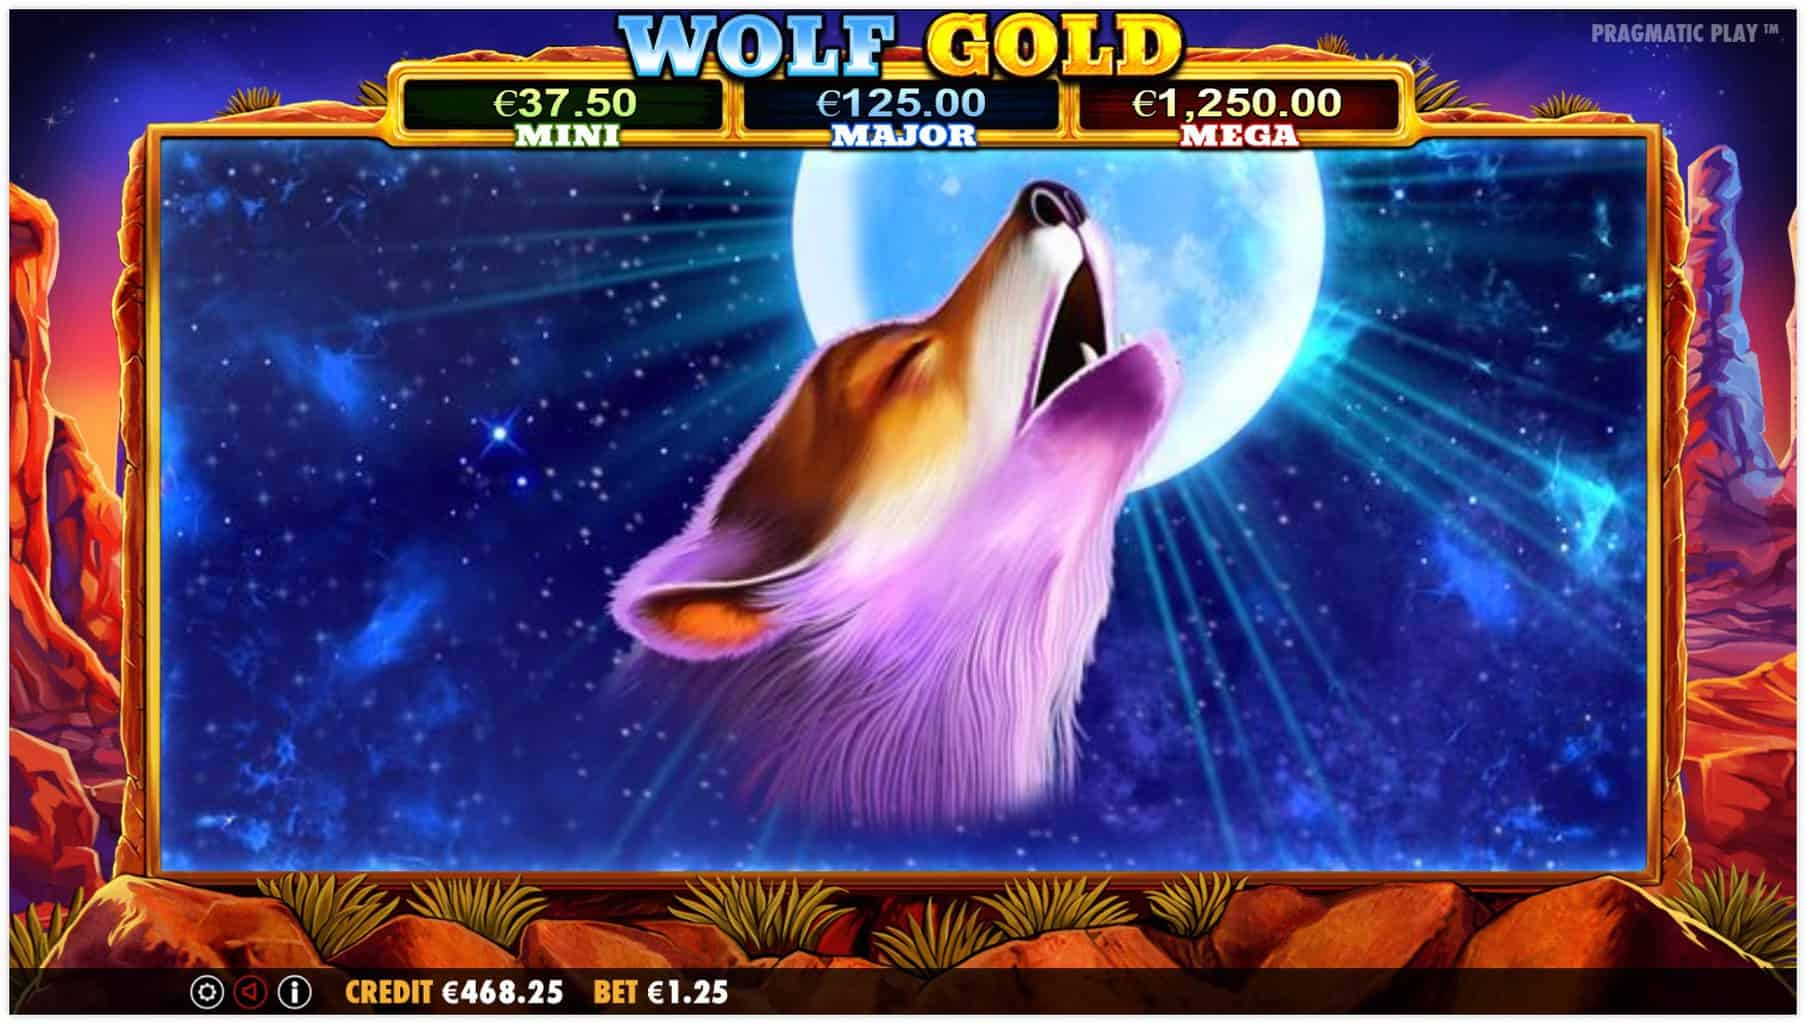 pragmatic play - wolf gold - reels - money respin - casinogroundsdotcom